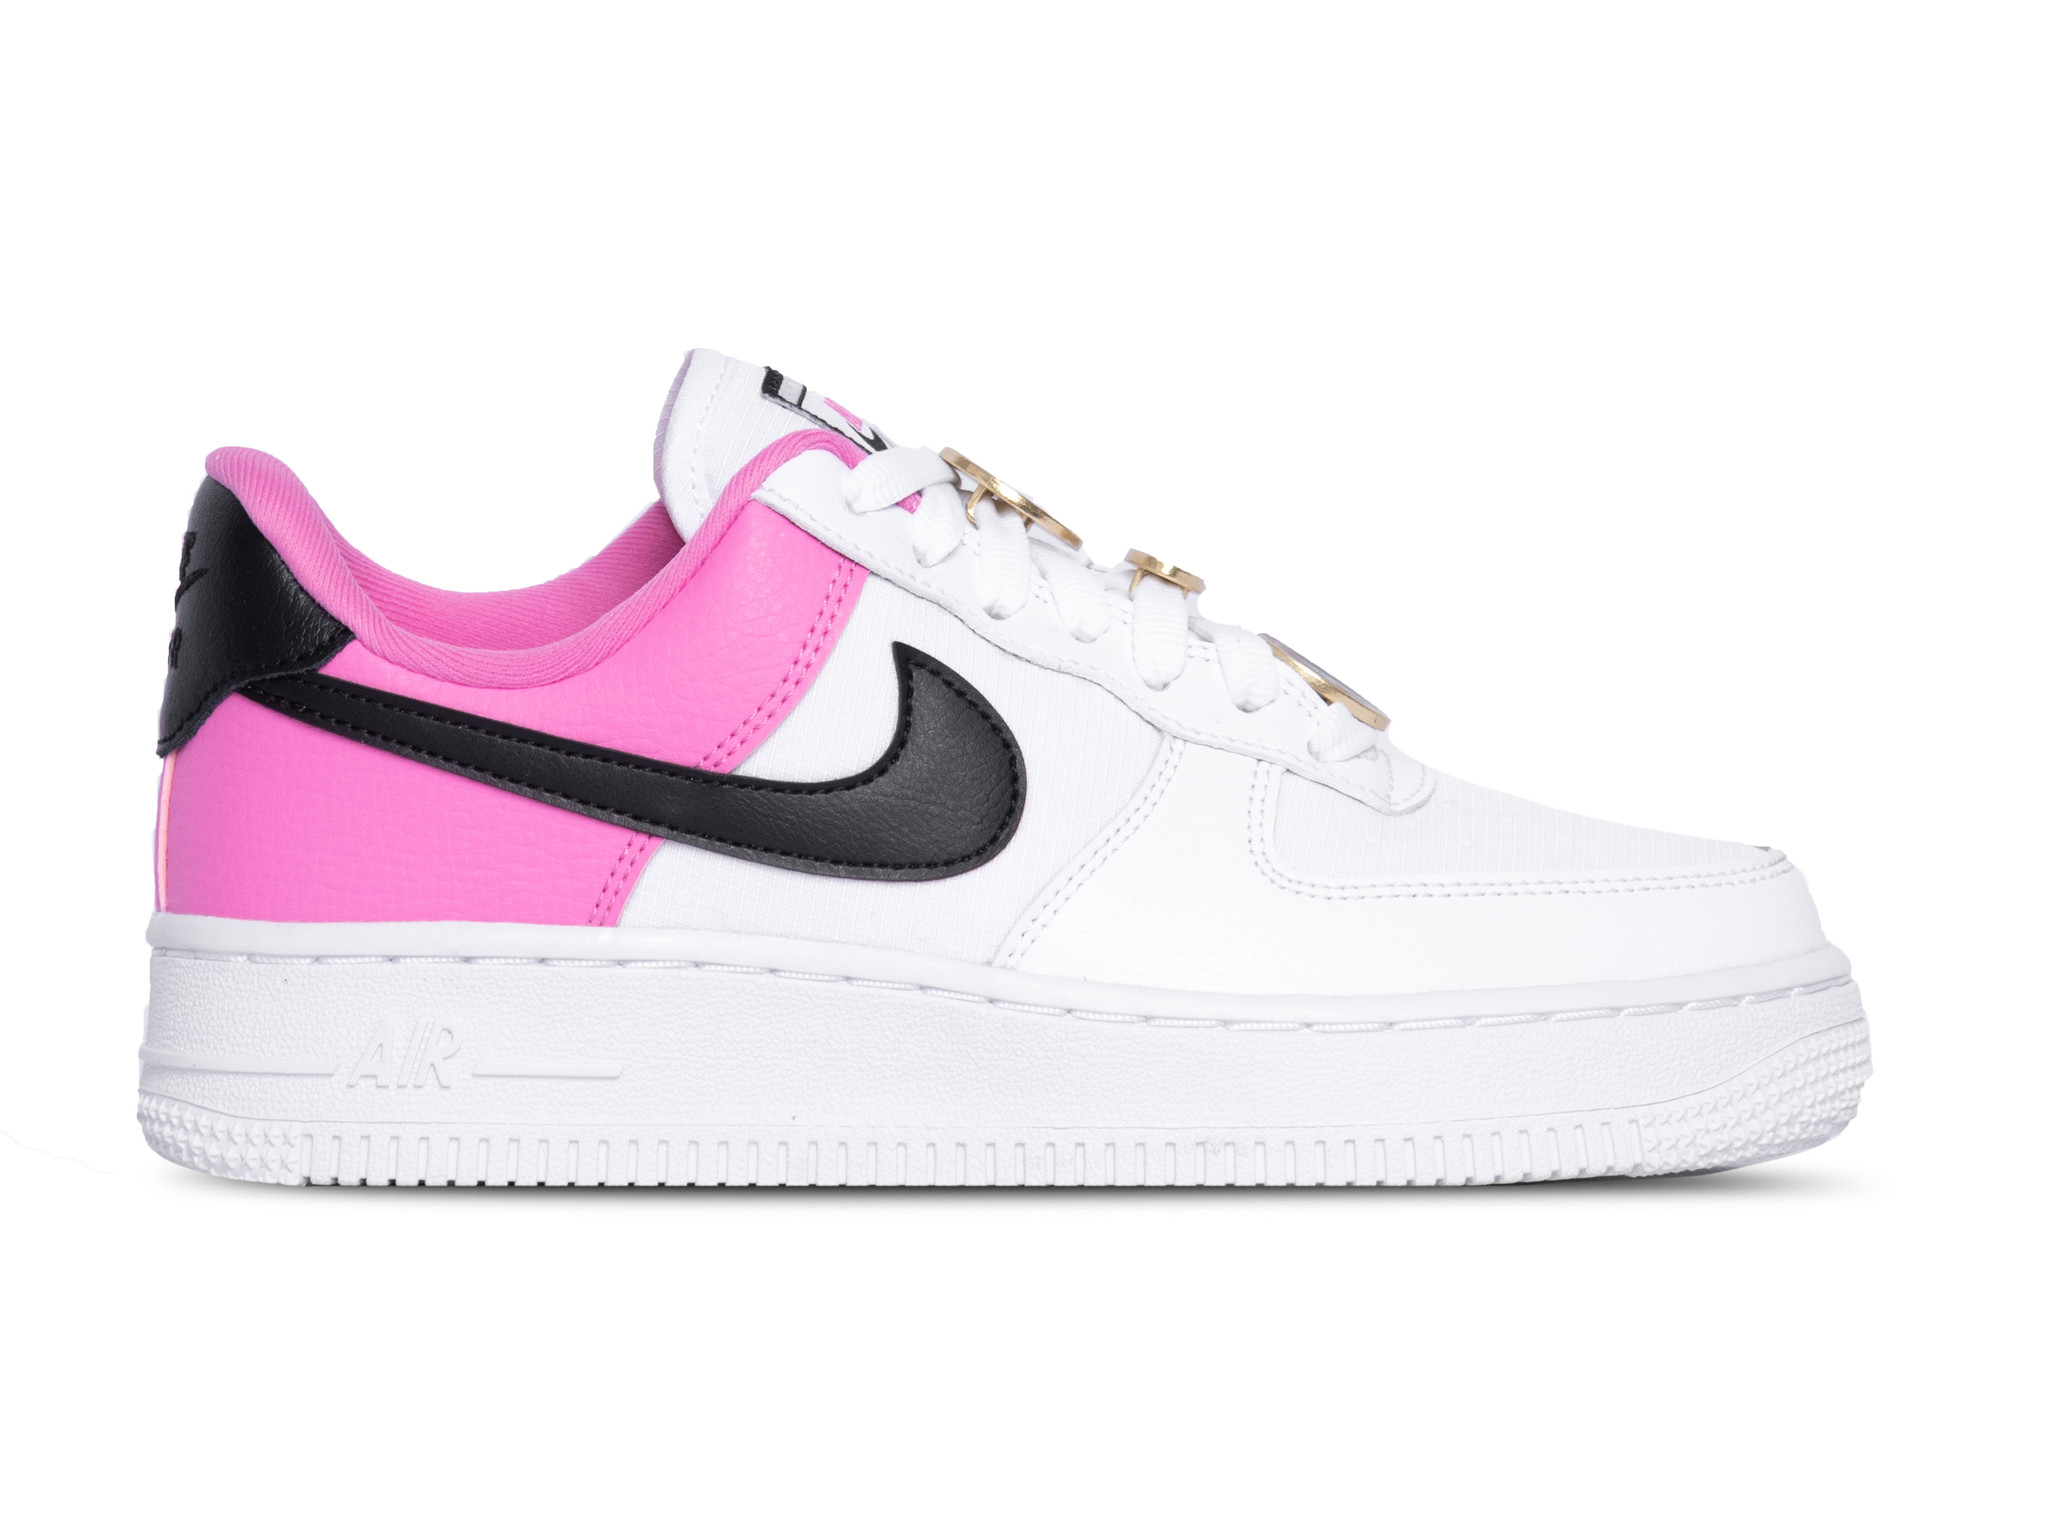 Women's Air Force 1 '07 Se Shoe in Whiteblack China Rose